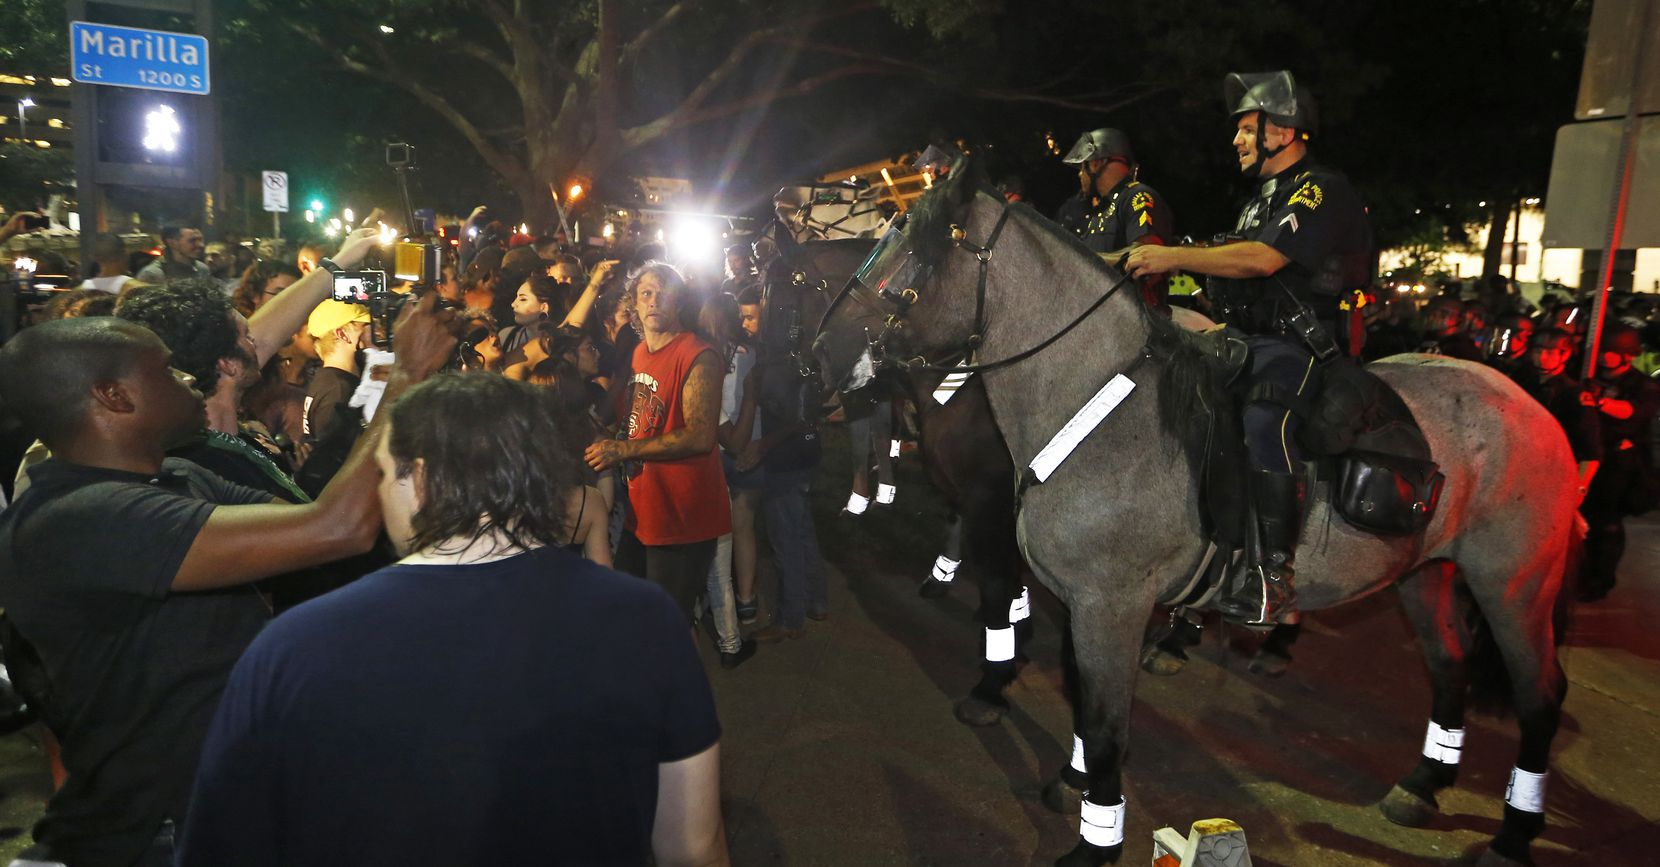 A line of police on horses push protestors back to Young Street after the March Against White Supremacy.